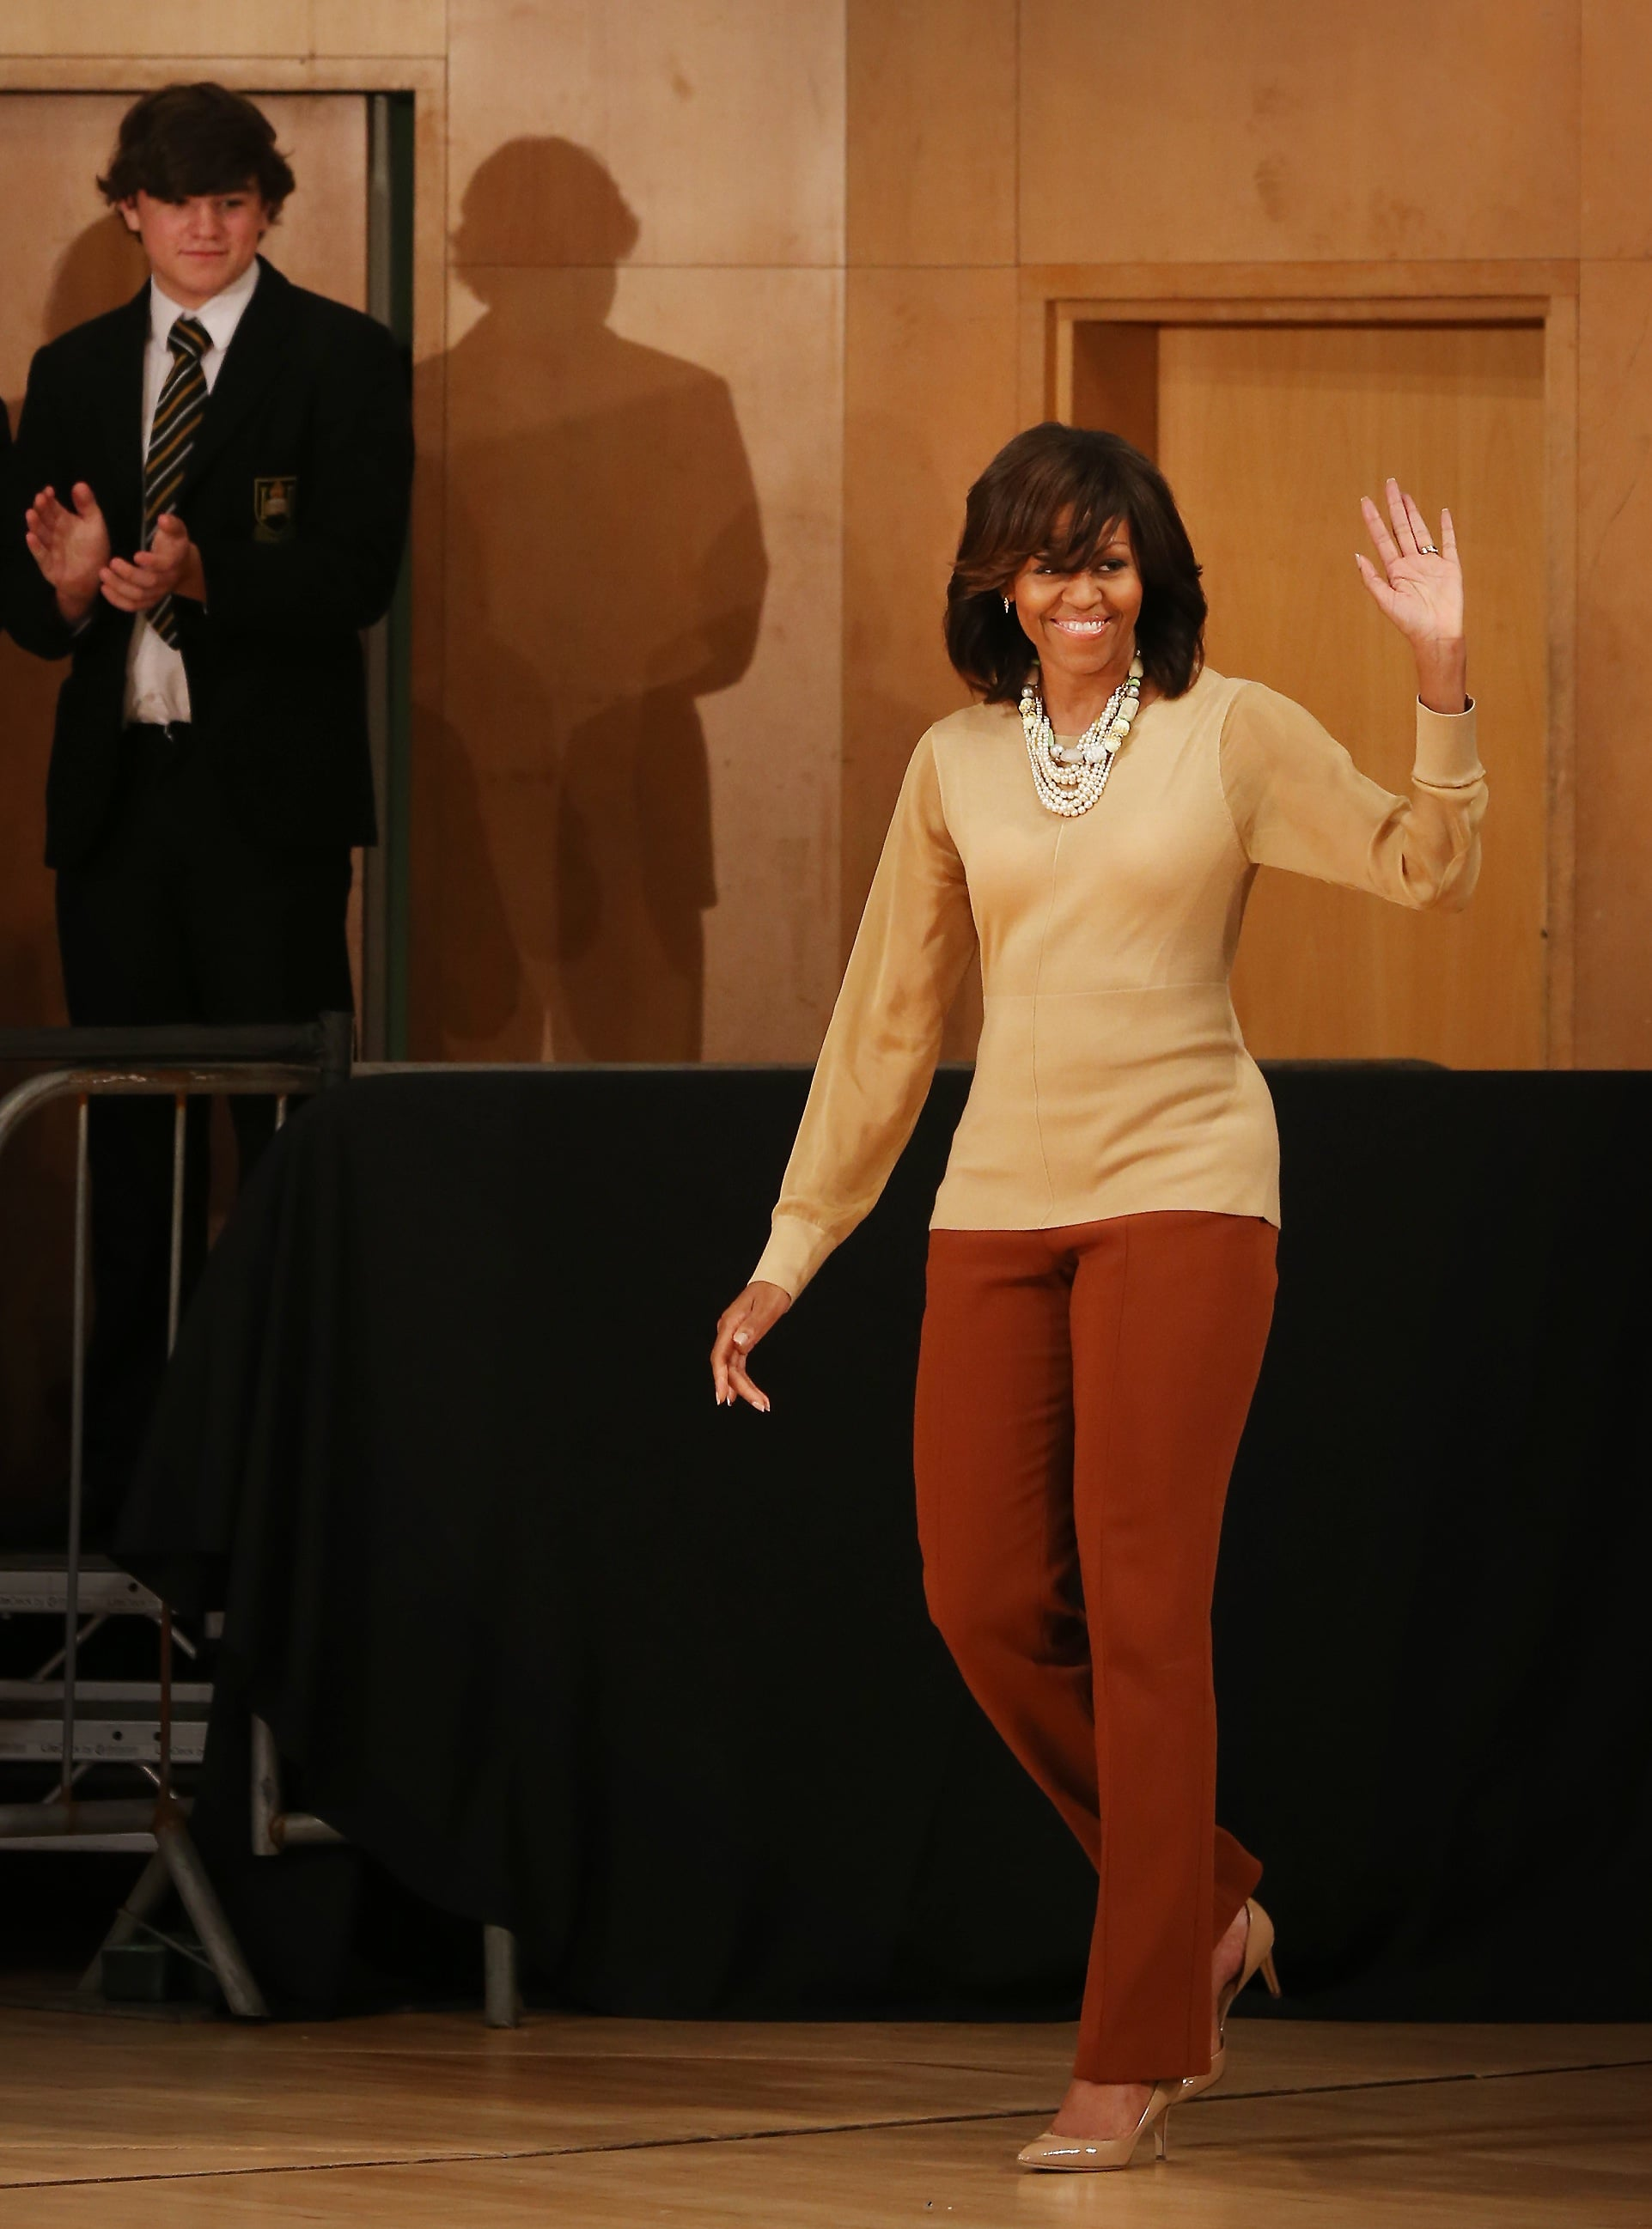 Inside, when Michelle took off her coat, she revealed an equally stylish ensemble: a nude sheer-sleeved blouse and rust-colored trousers, accessorized with a multistrand necklace and nude patent pumps.